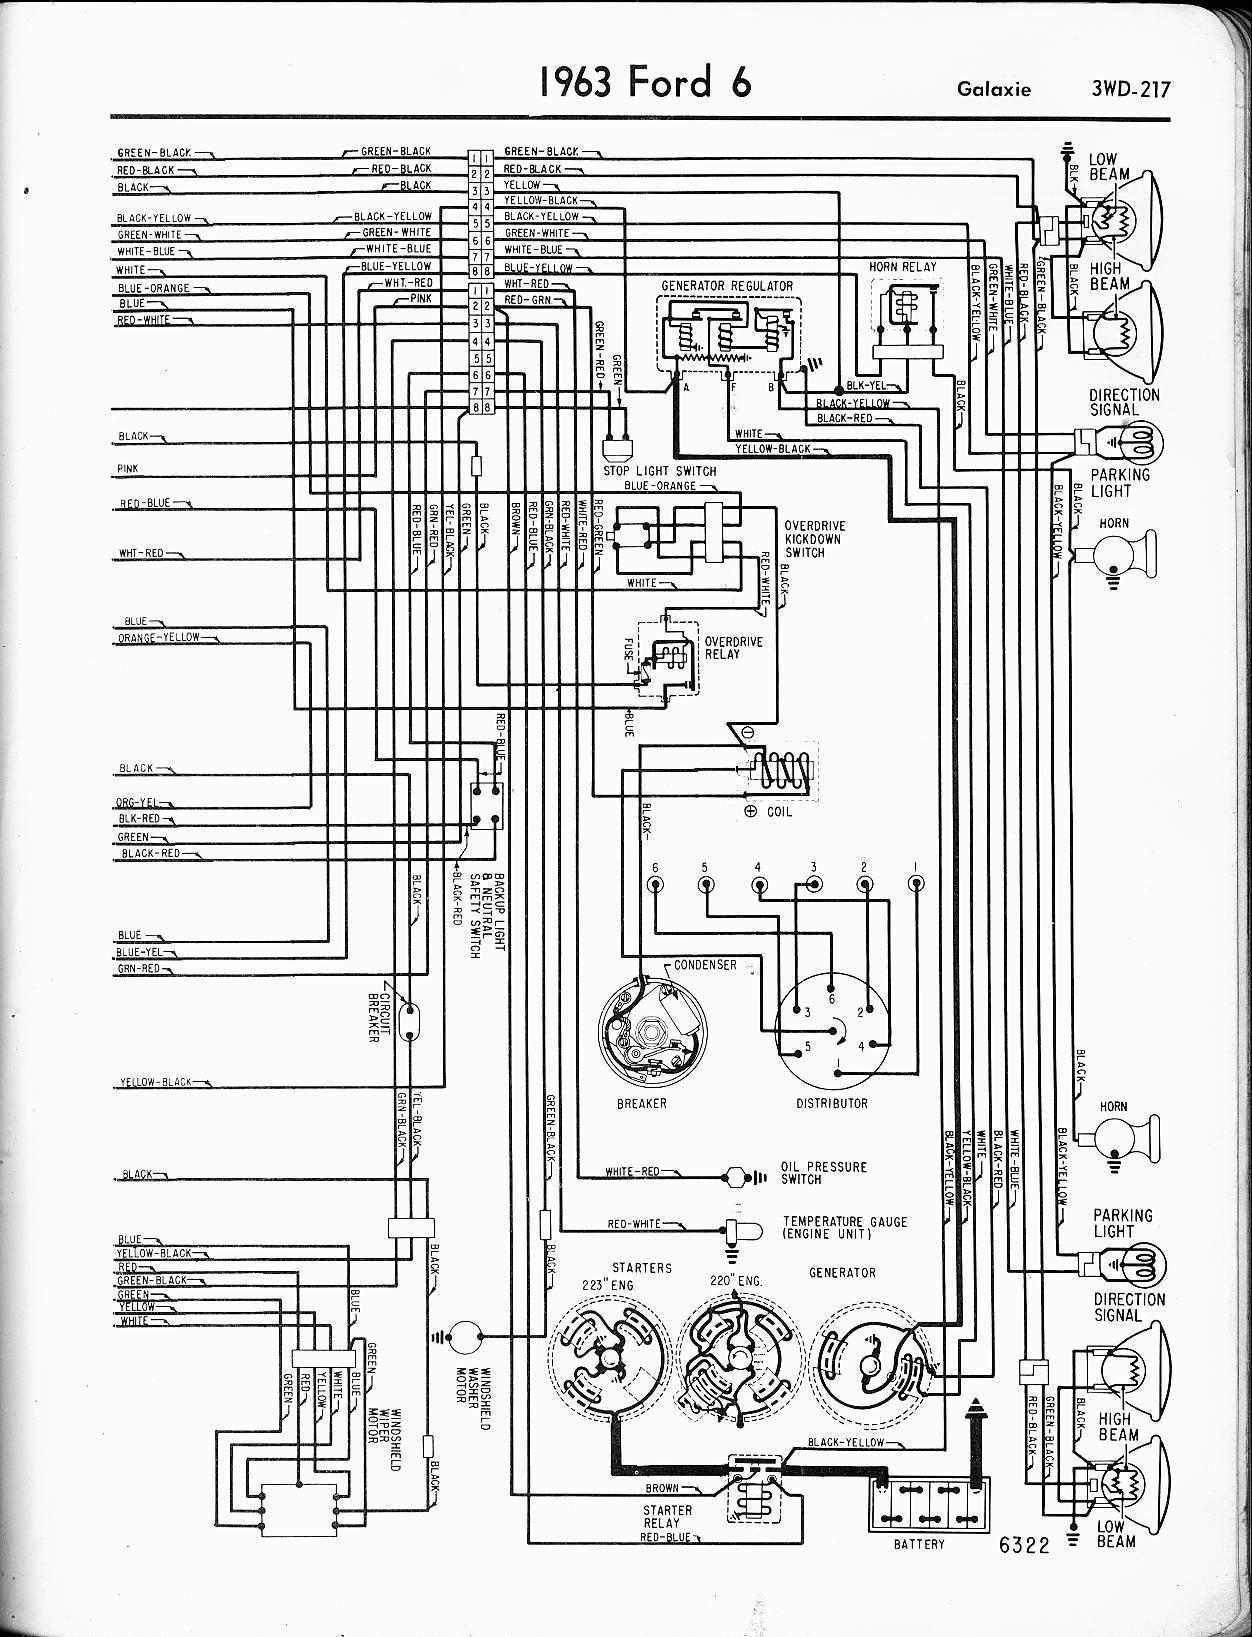 57 65 Ford Wiring Diagrams 1960 F100 Loom 1963 6 Cyl Galaxie Right